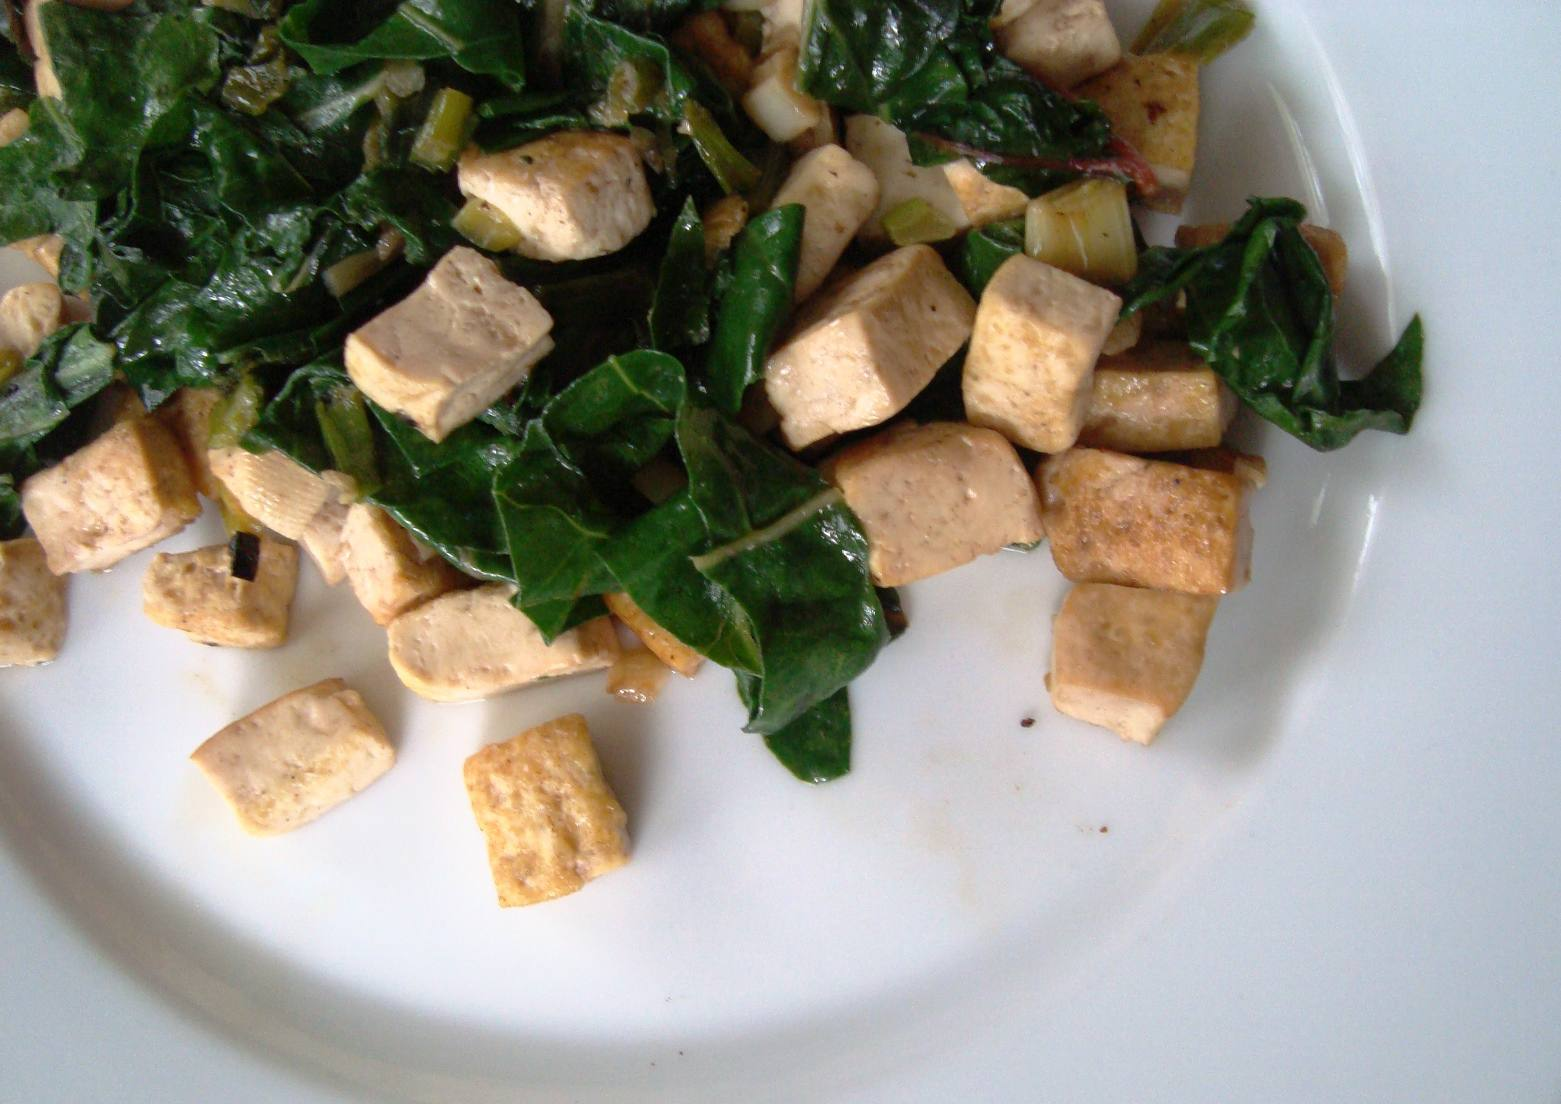 Tofu and Swiss chard vegetable stir-fry on a plate